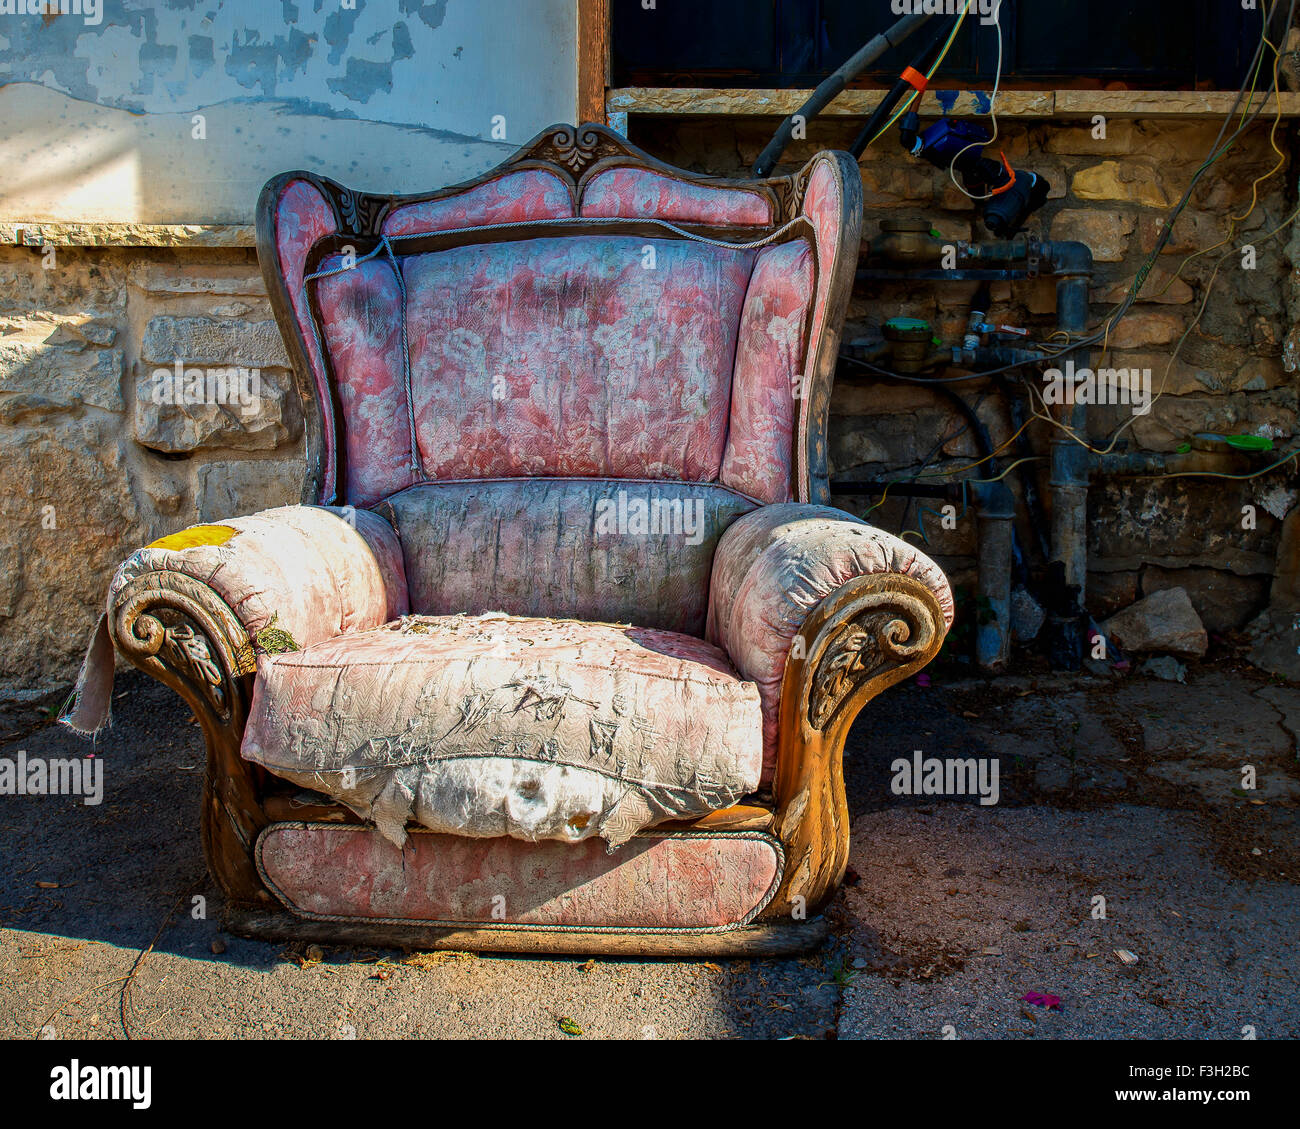 Old armchair Stock Photo, Royalty Free Image: 88270880 - Alamy